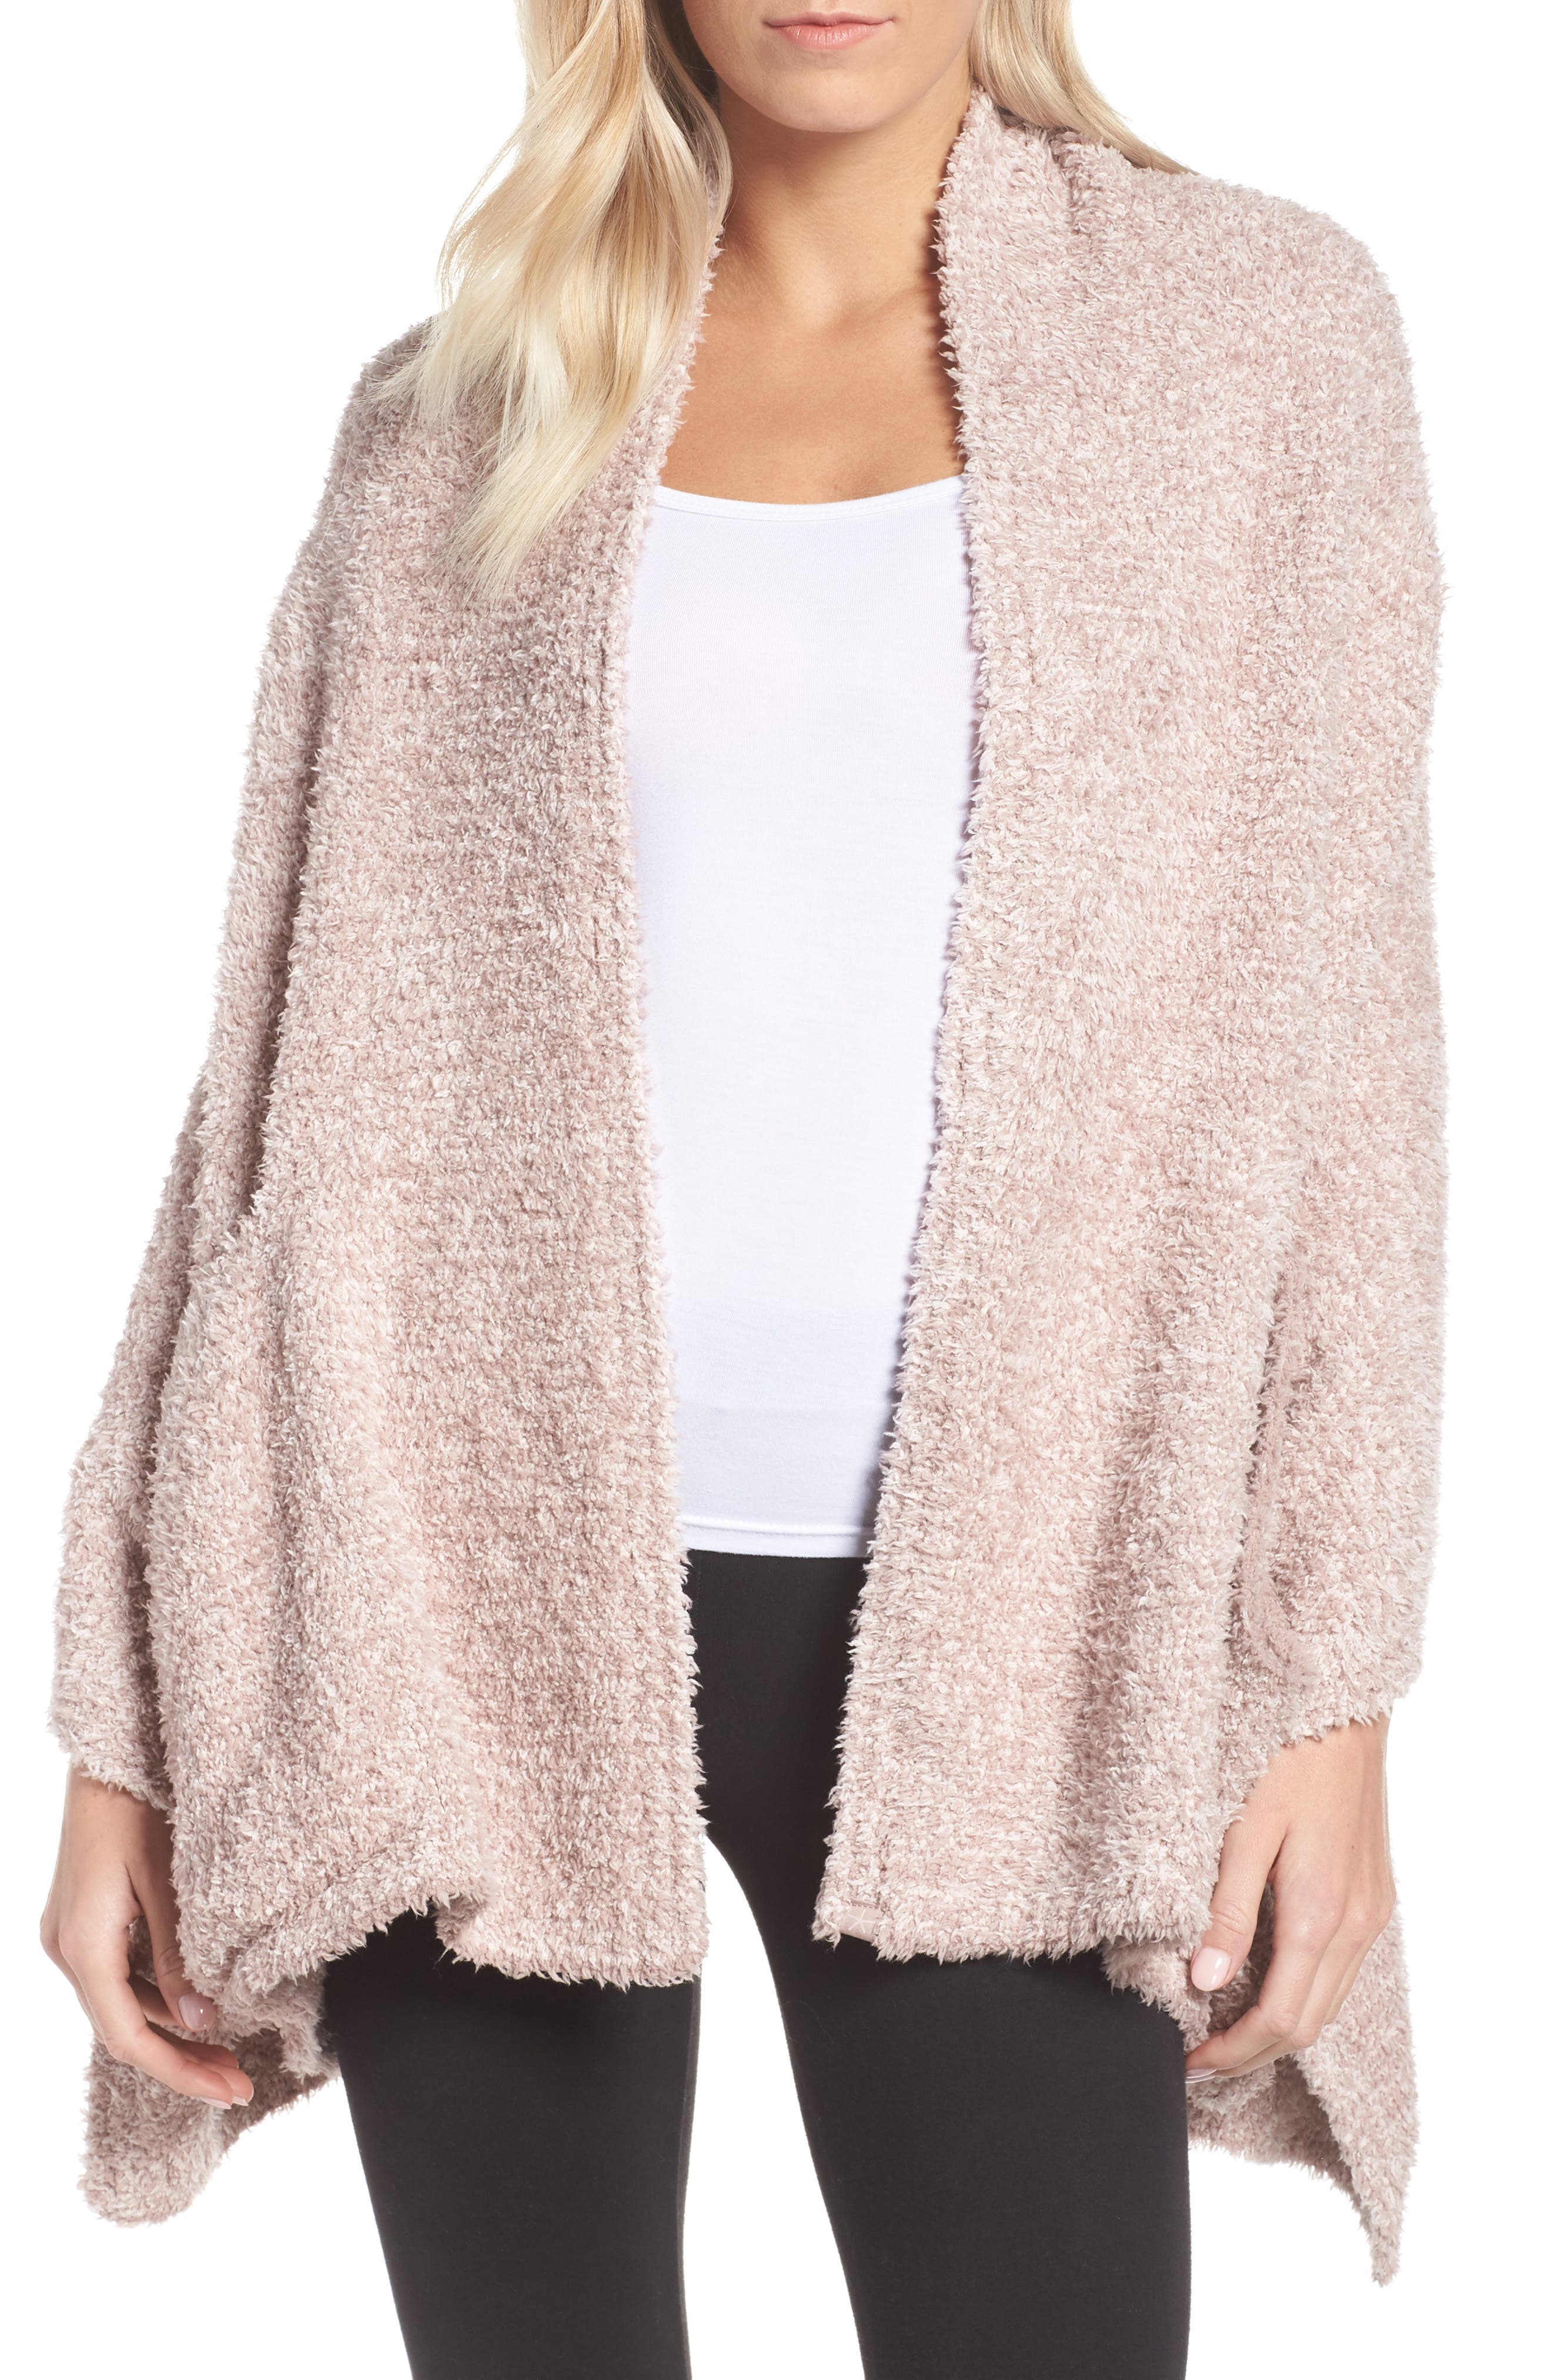 Barefoot Dreams Cozychic Travel Shawl, Size One Size - Pink (Online Only)